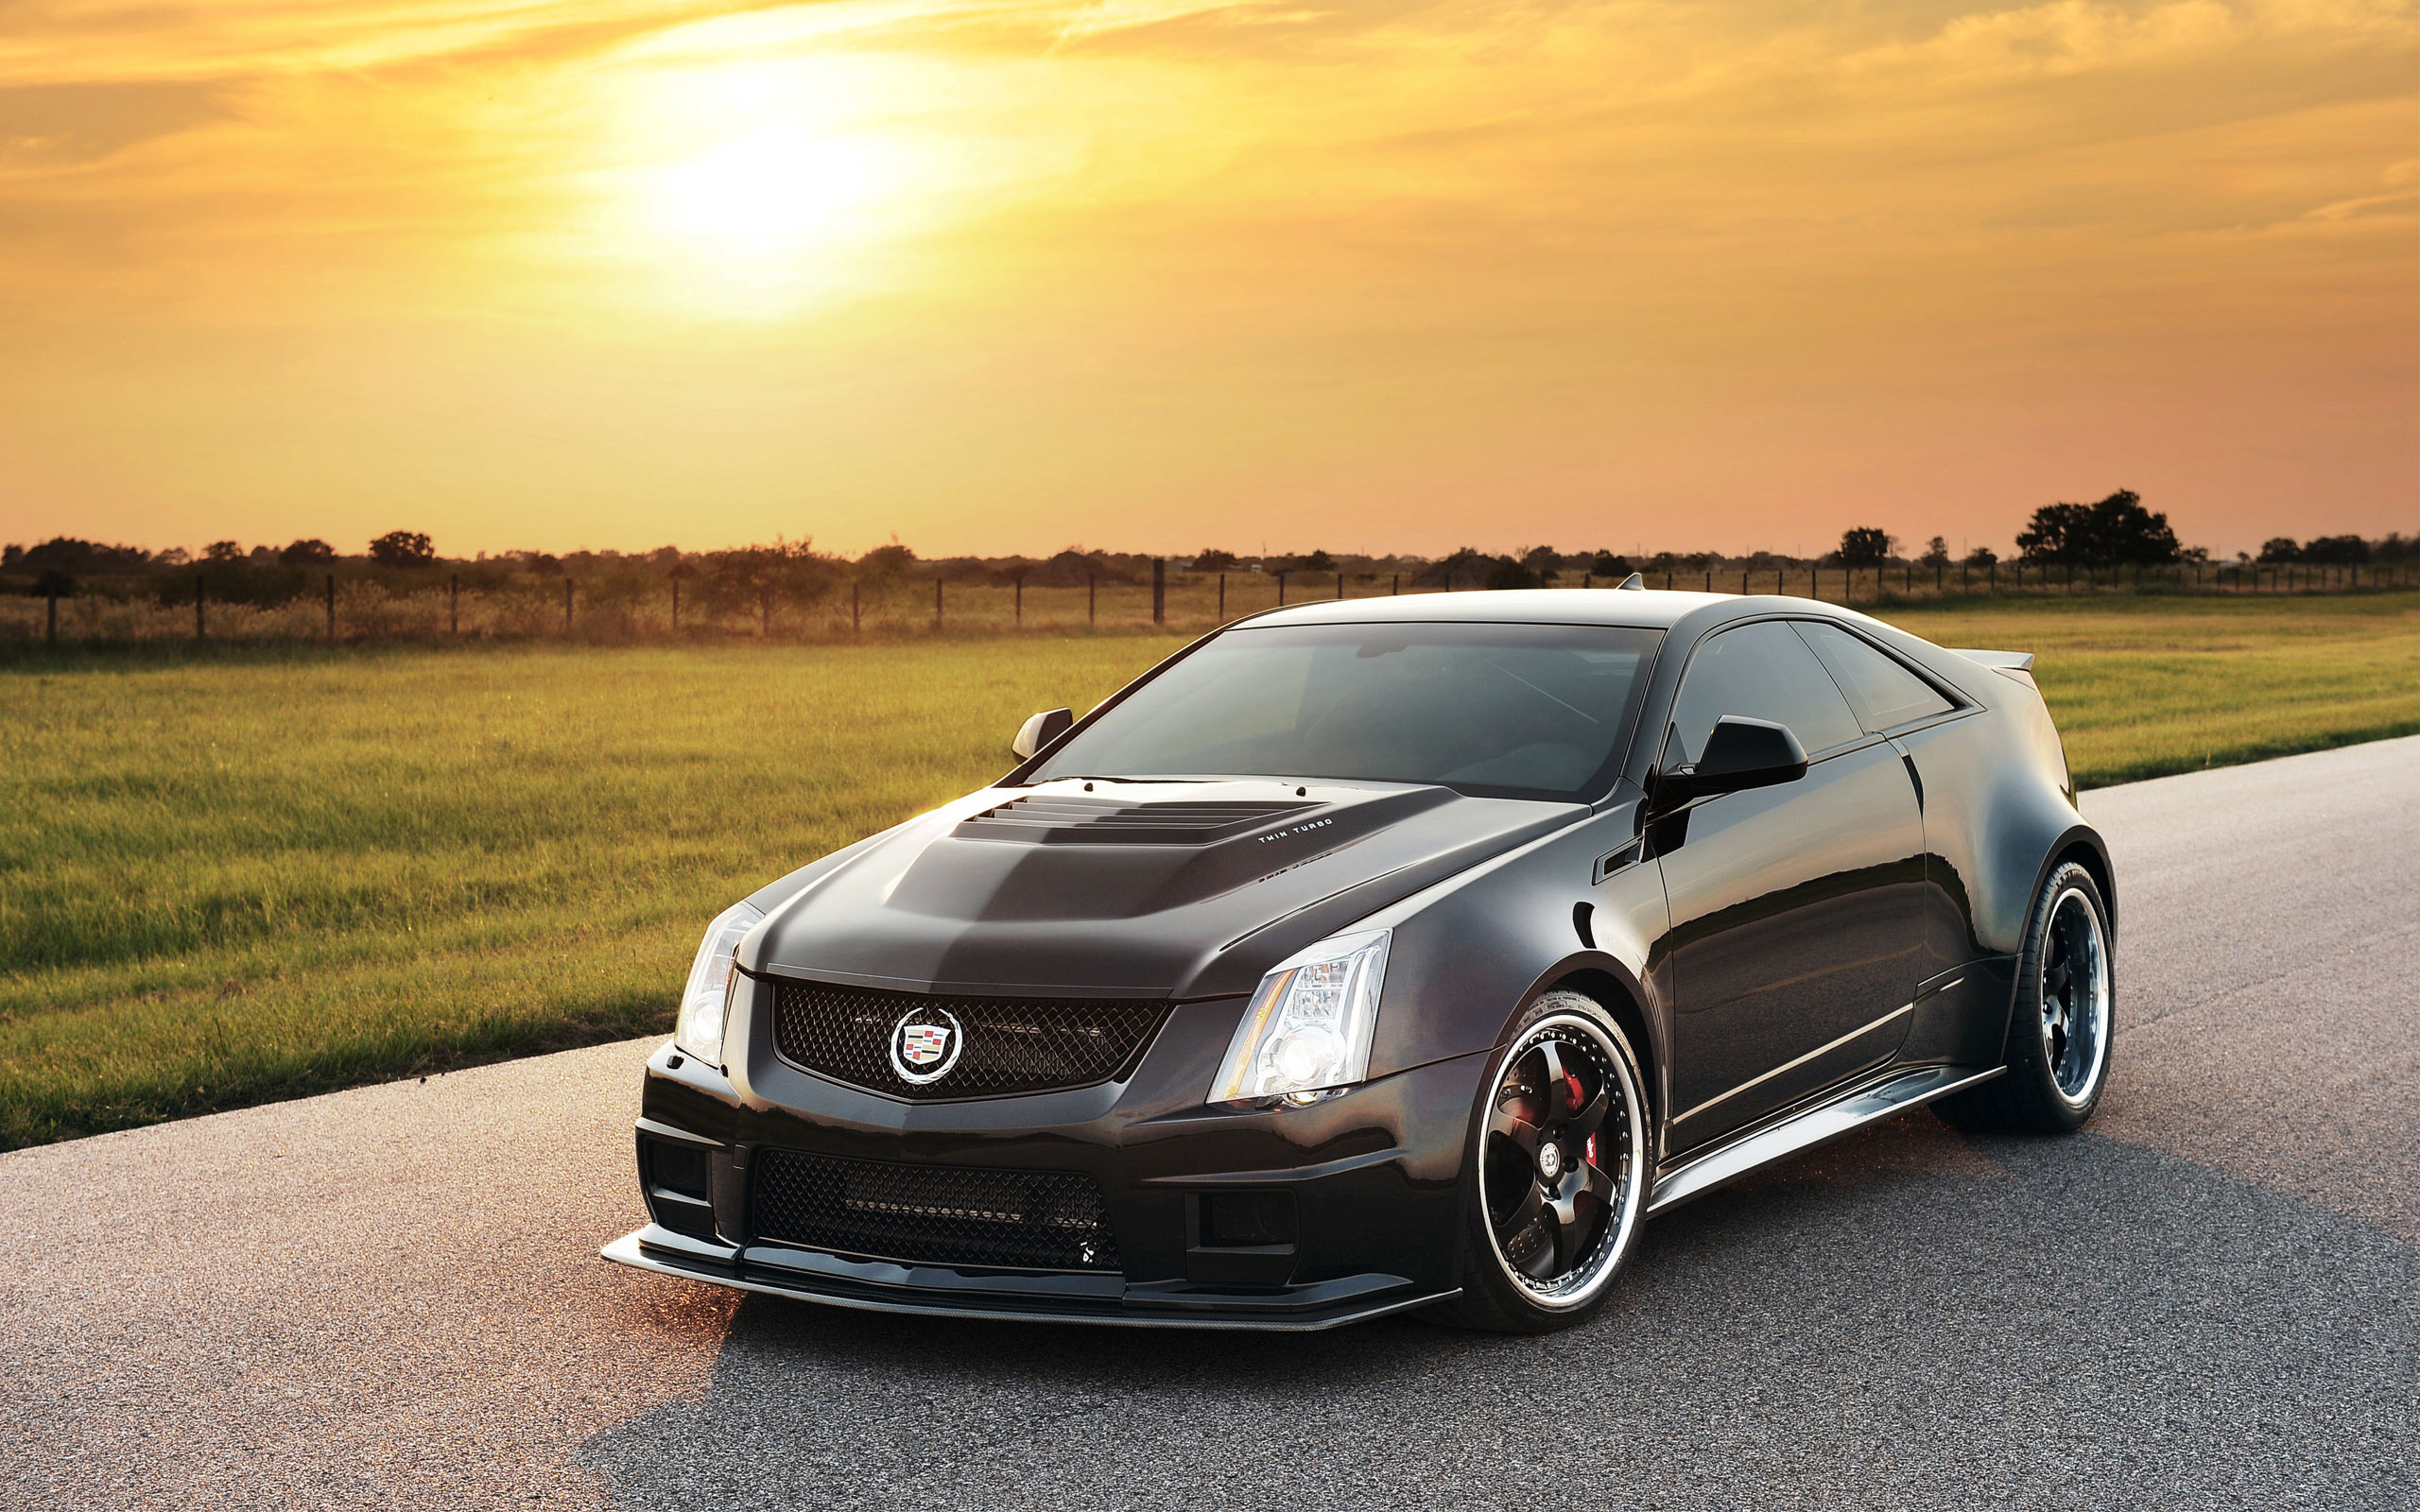 cadillac cts v coupe 2013 lujoso y deportivo lista de carros. Black Bedroom Furniture Sets. Home Design Ideas